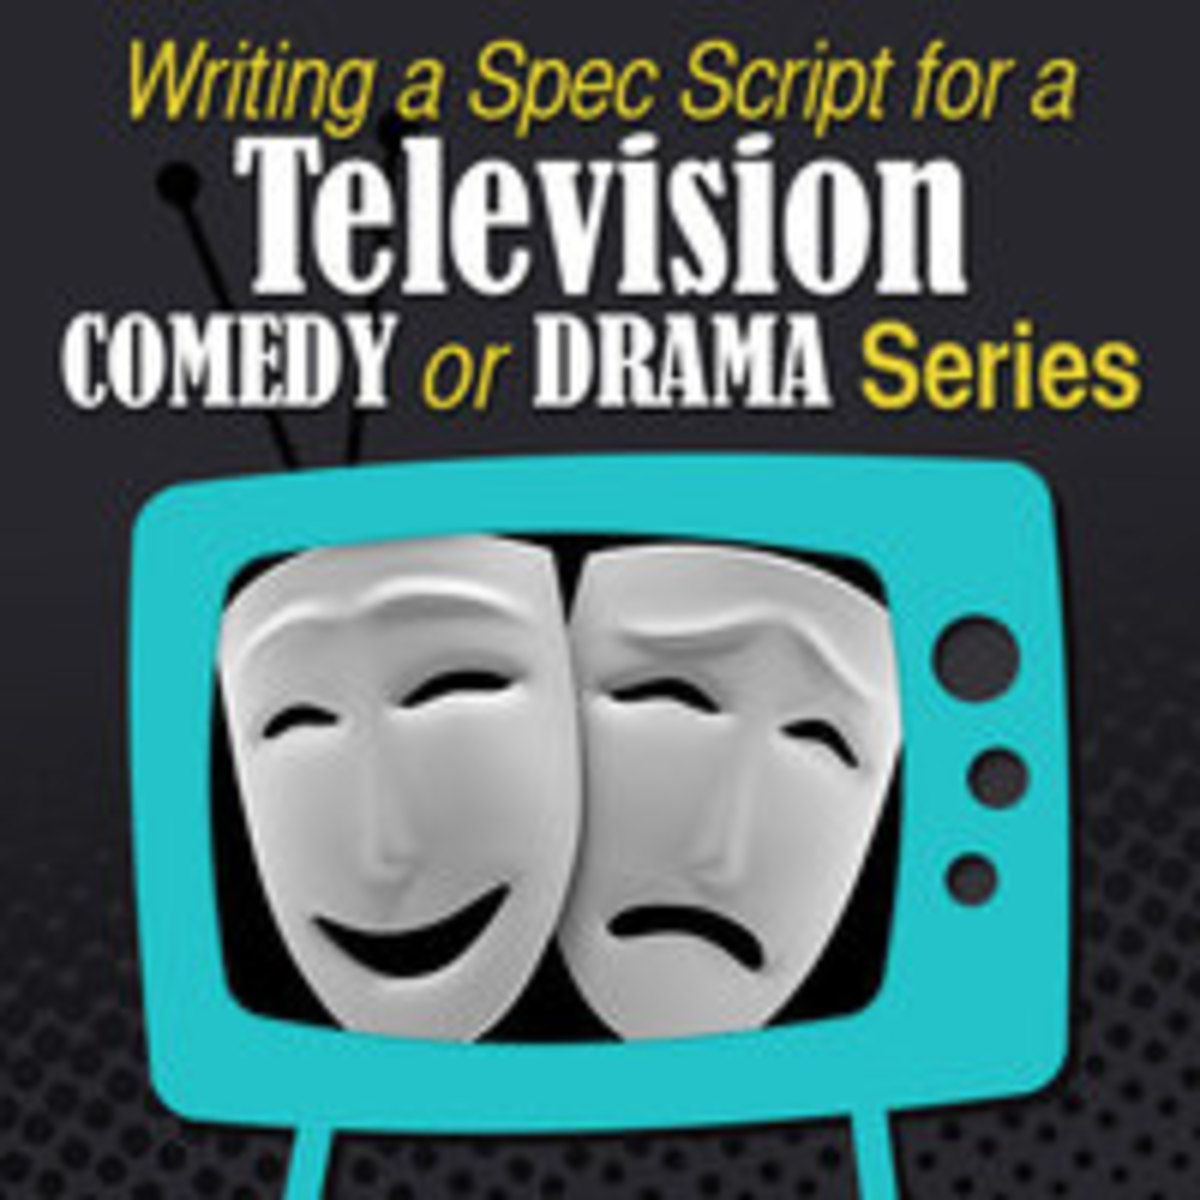 Writing a Spec Script for a Television Comedy or Drama Series